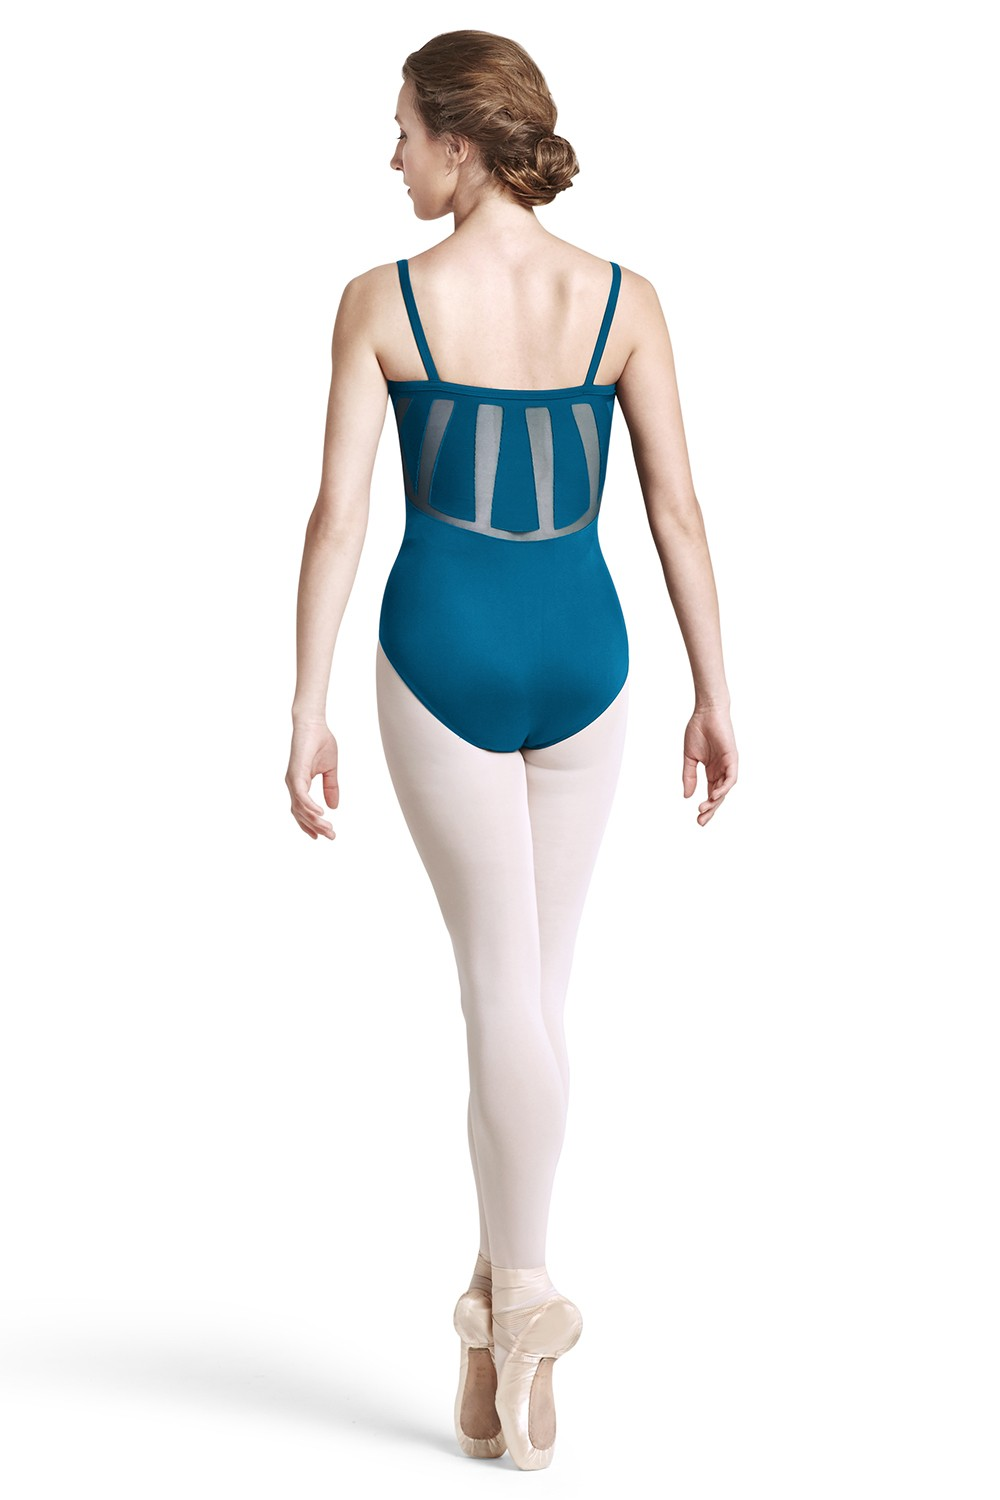 Harina Women's Dance Leotards